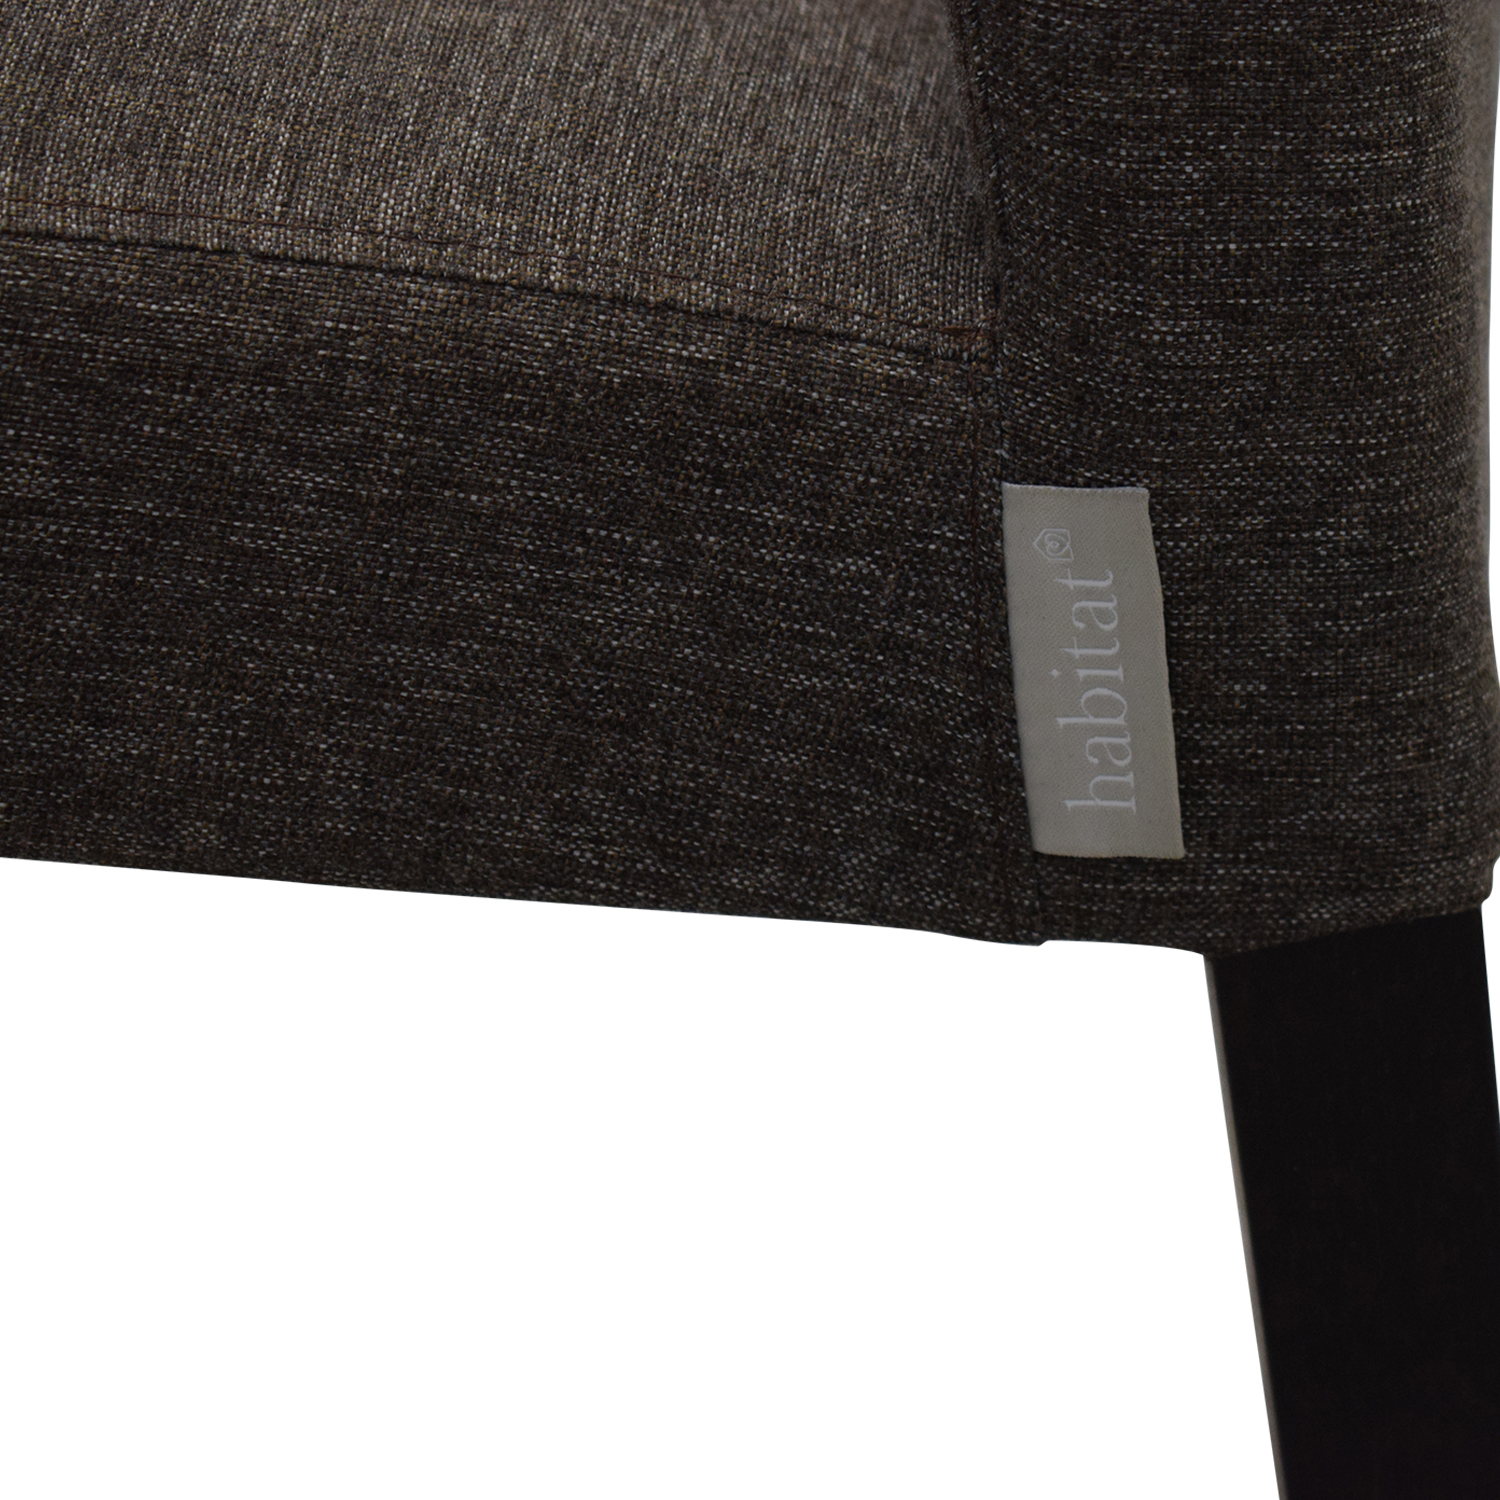 Heal's of London Heals of London Habitat Grey Upholstered Dining Chairs coupon